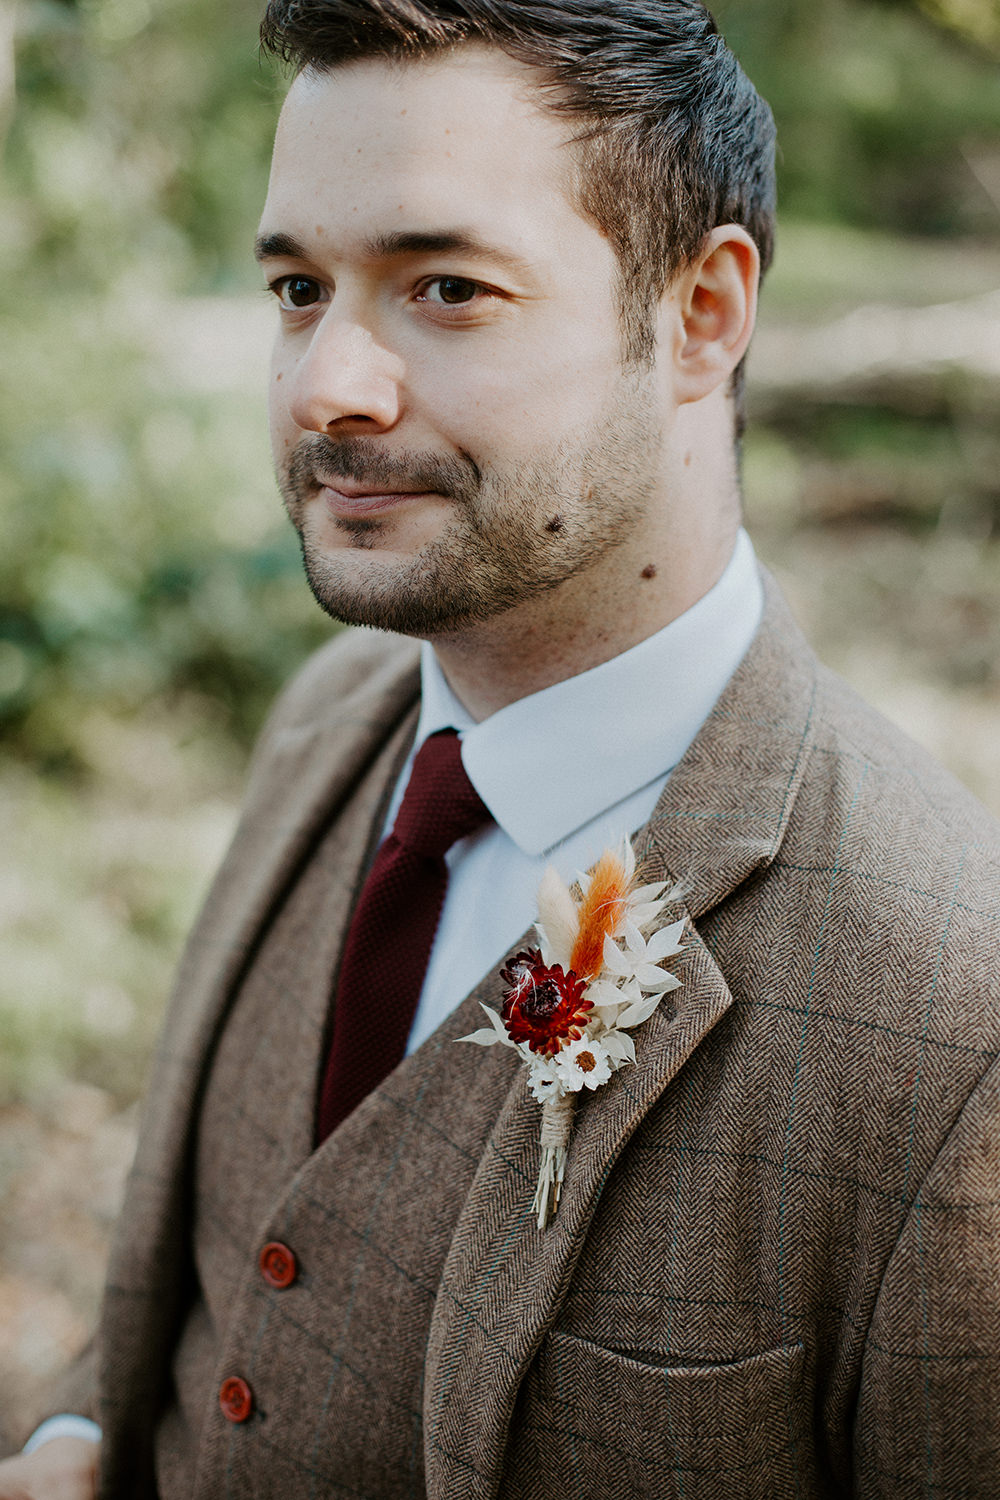 Groom Suit Brown Check Burgundy Tie Buttonhole Flowers Grasses Boho Wedding Ideas The Enlight Project